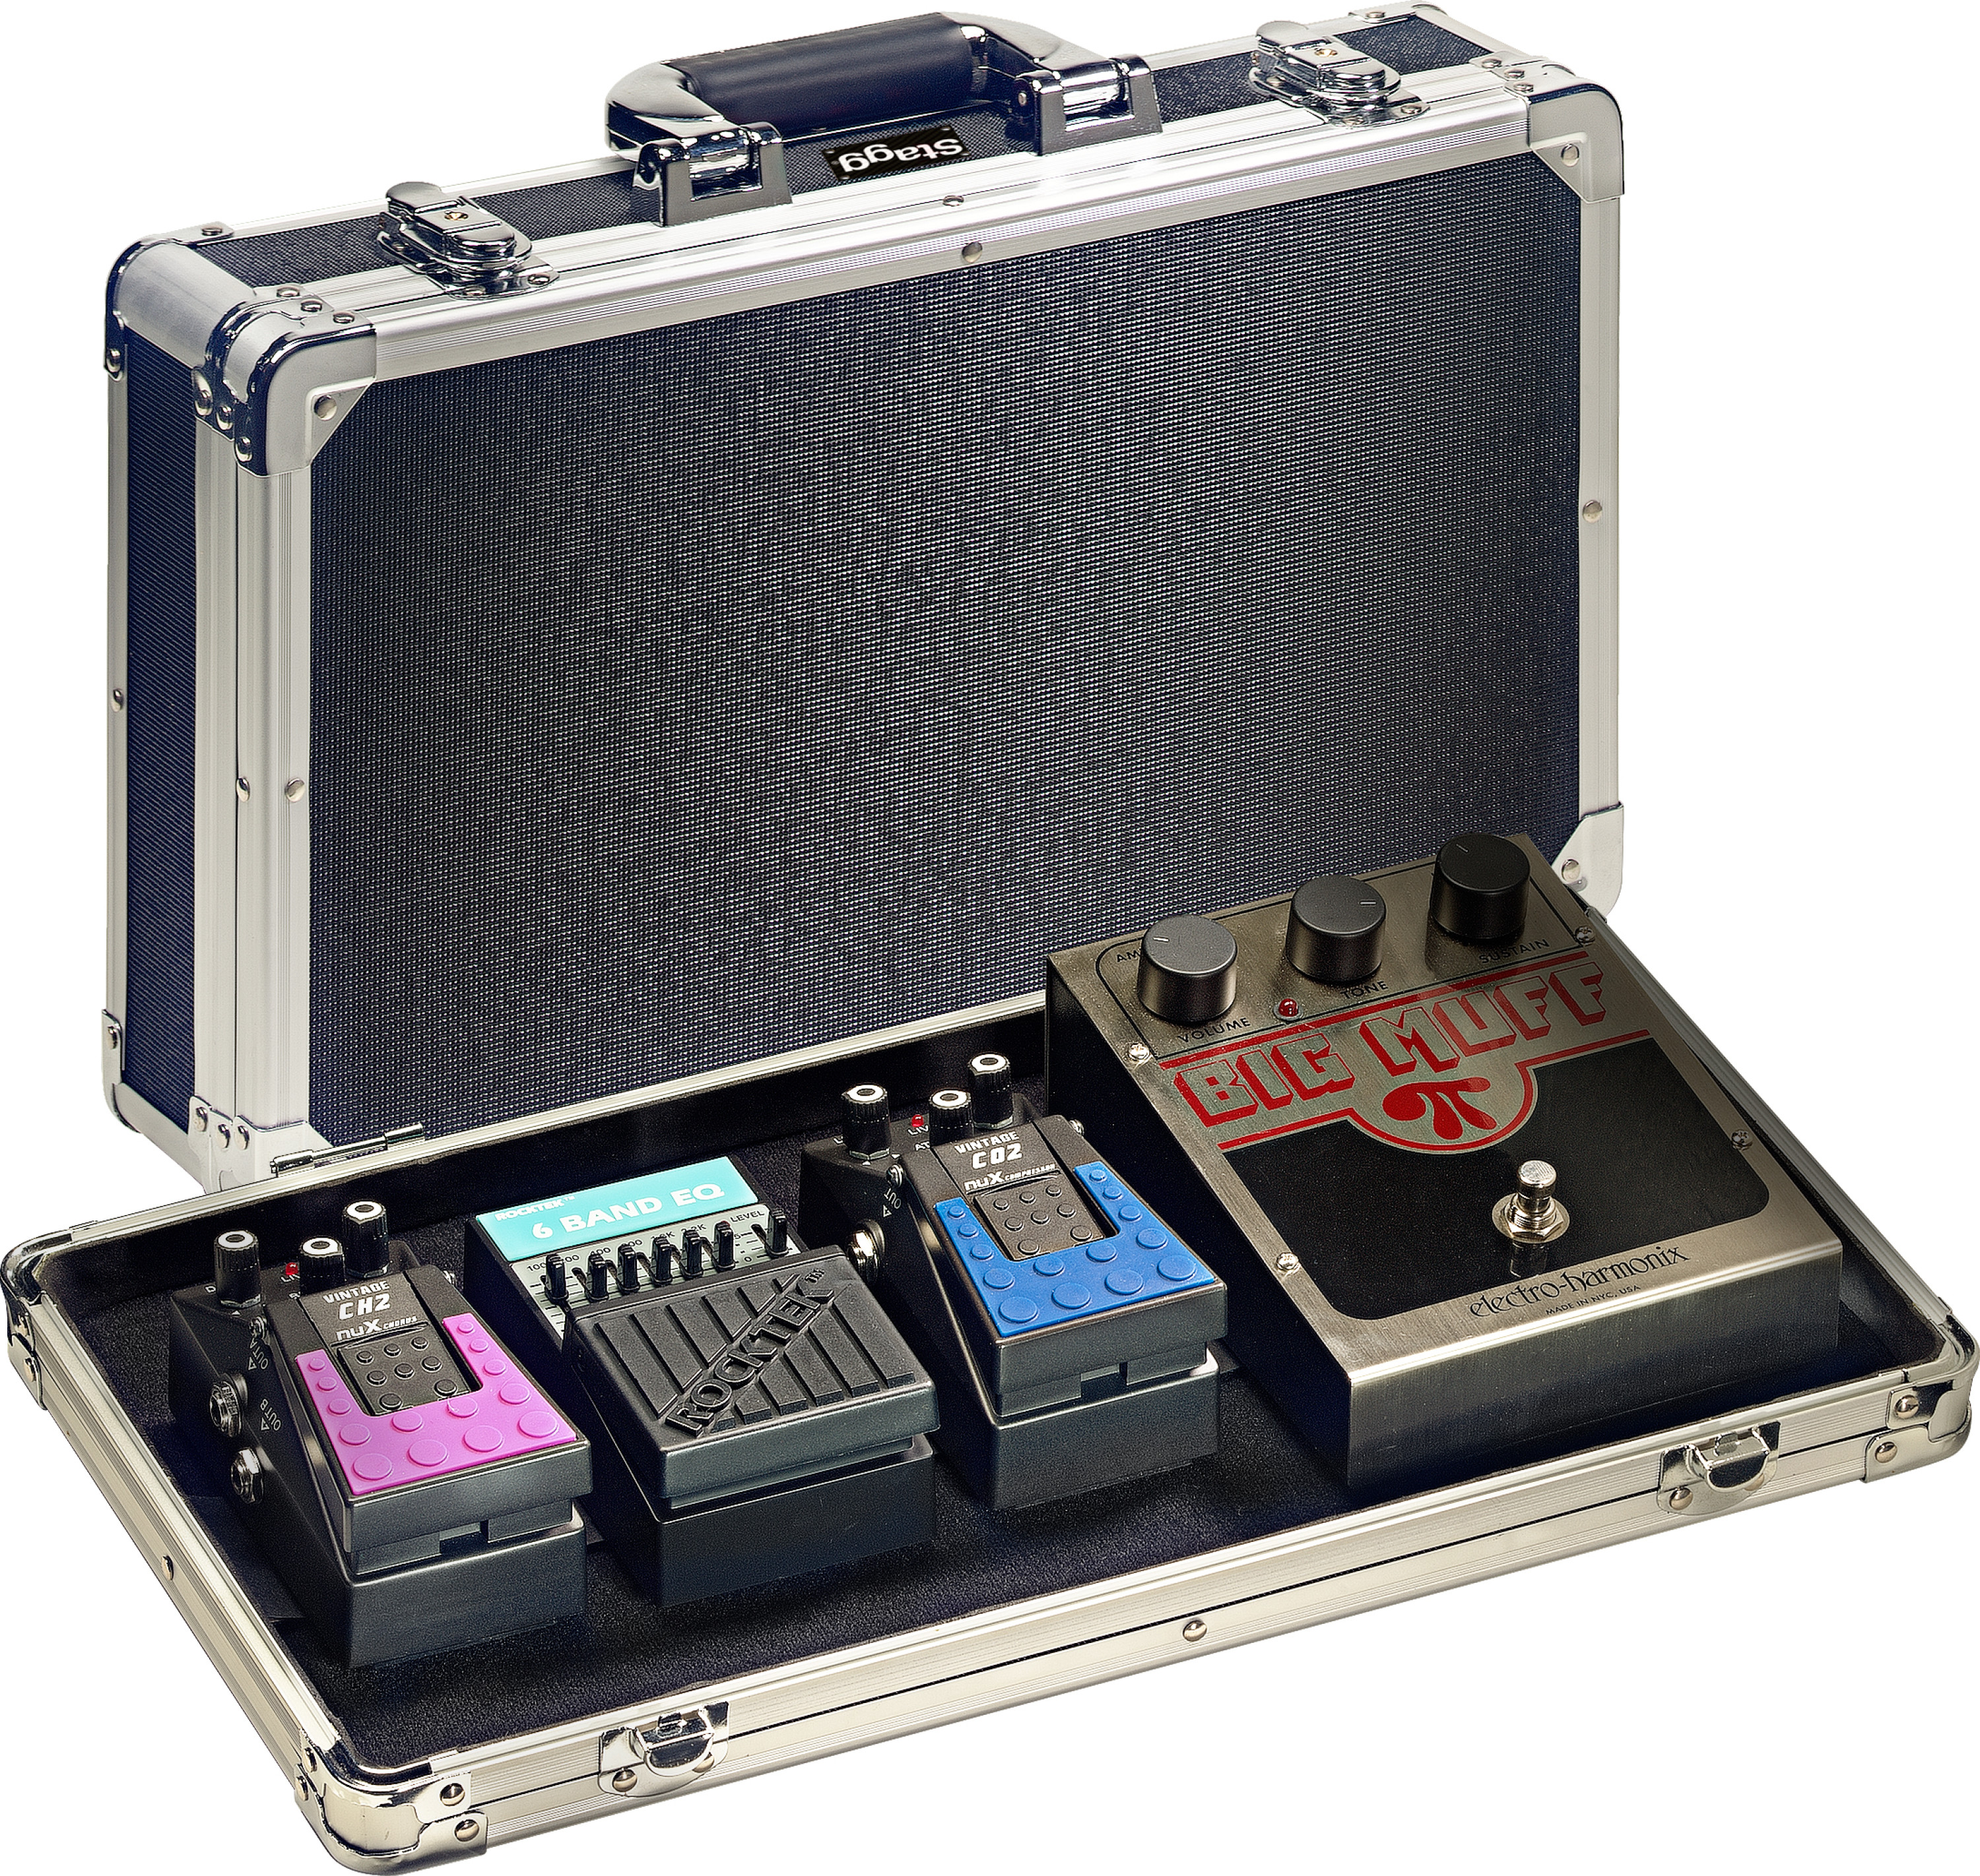 Products Stagg Pedal Efek Gitar Metal Pro Abs Case For Guitar Effect Pedals Not Included